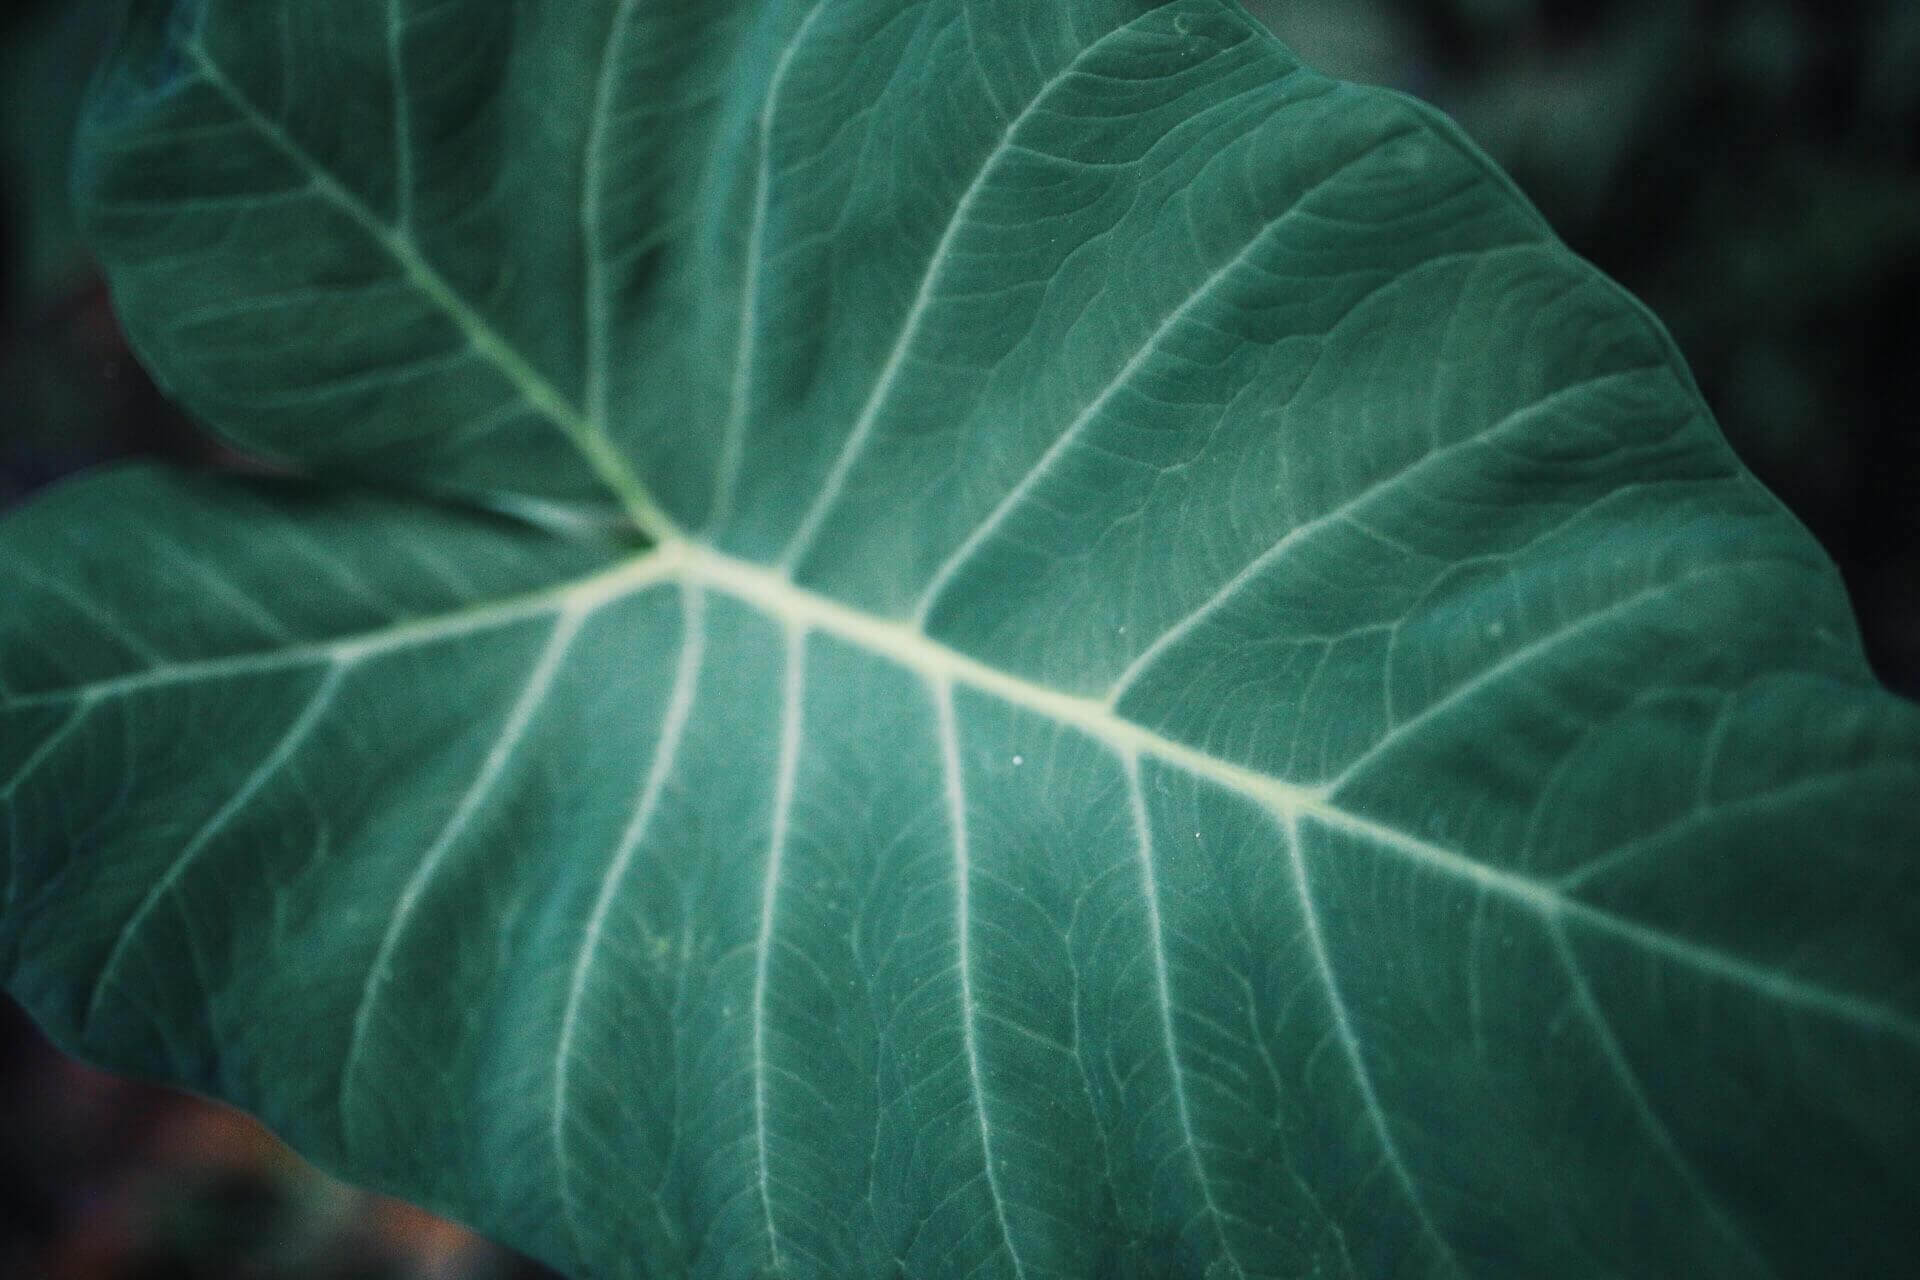 Green leaf photographed in Bali